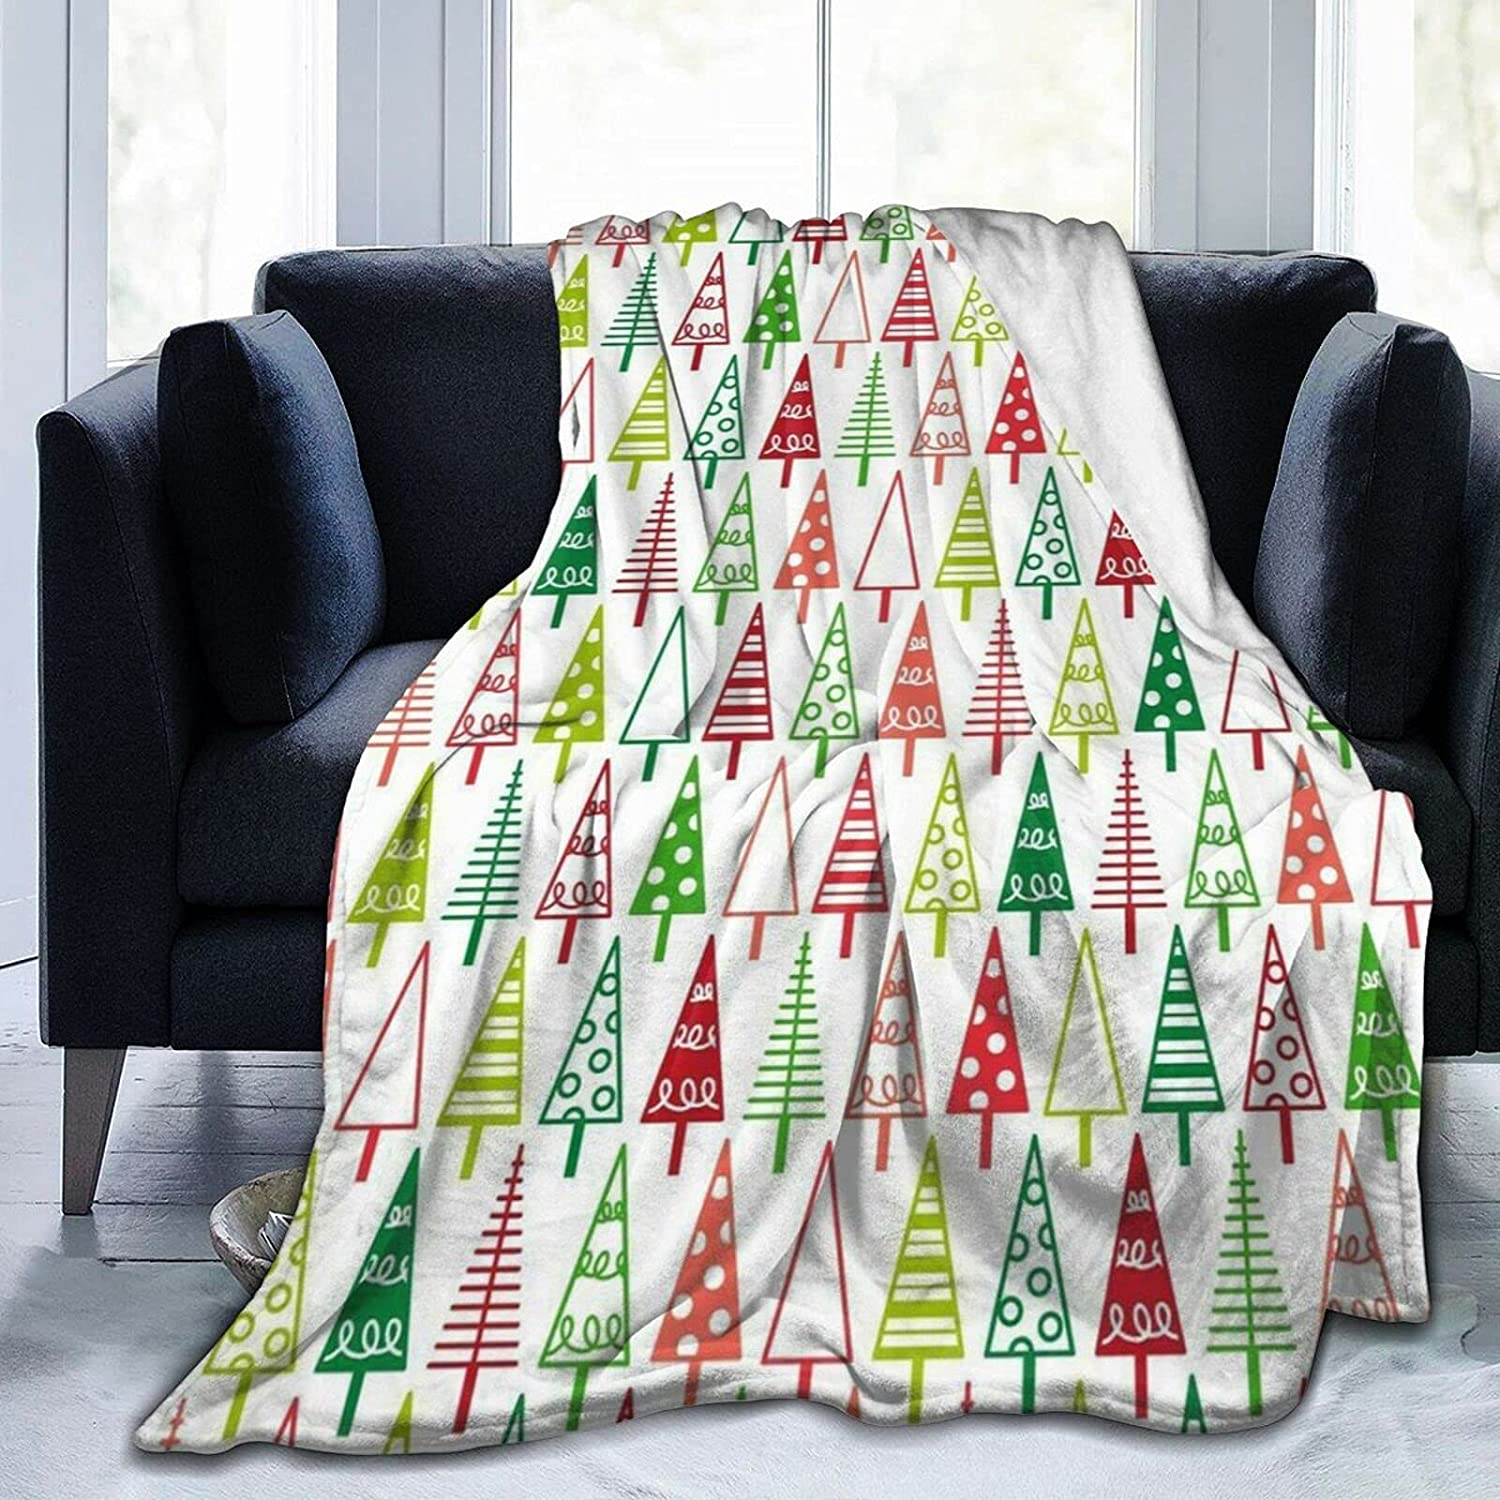 Max 83% OFF Large discharge sale Christmas Soft Flannel Blanket for Sofa Adluts Kids Cozy